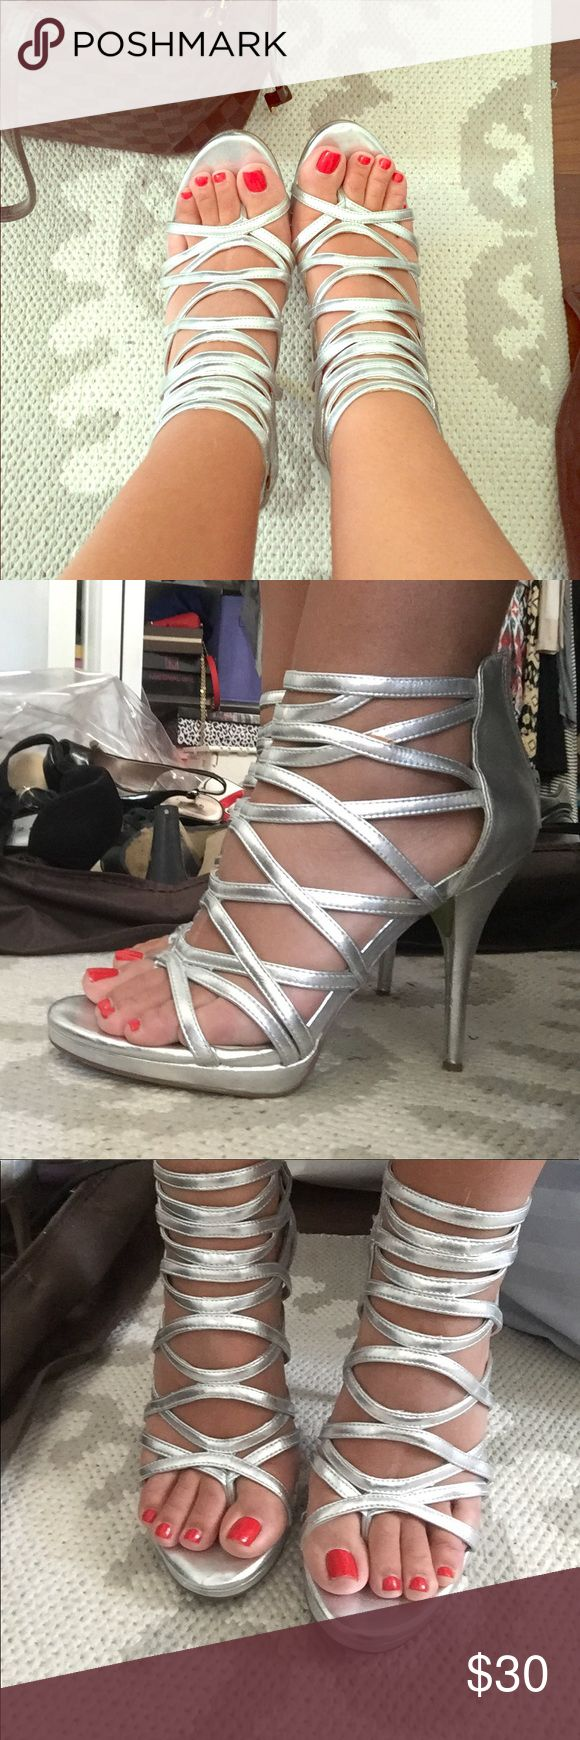 Silver strappy heels Silver strappy heels with zip up back. Great condition and comfortable to wear! Shoes Heels